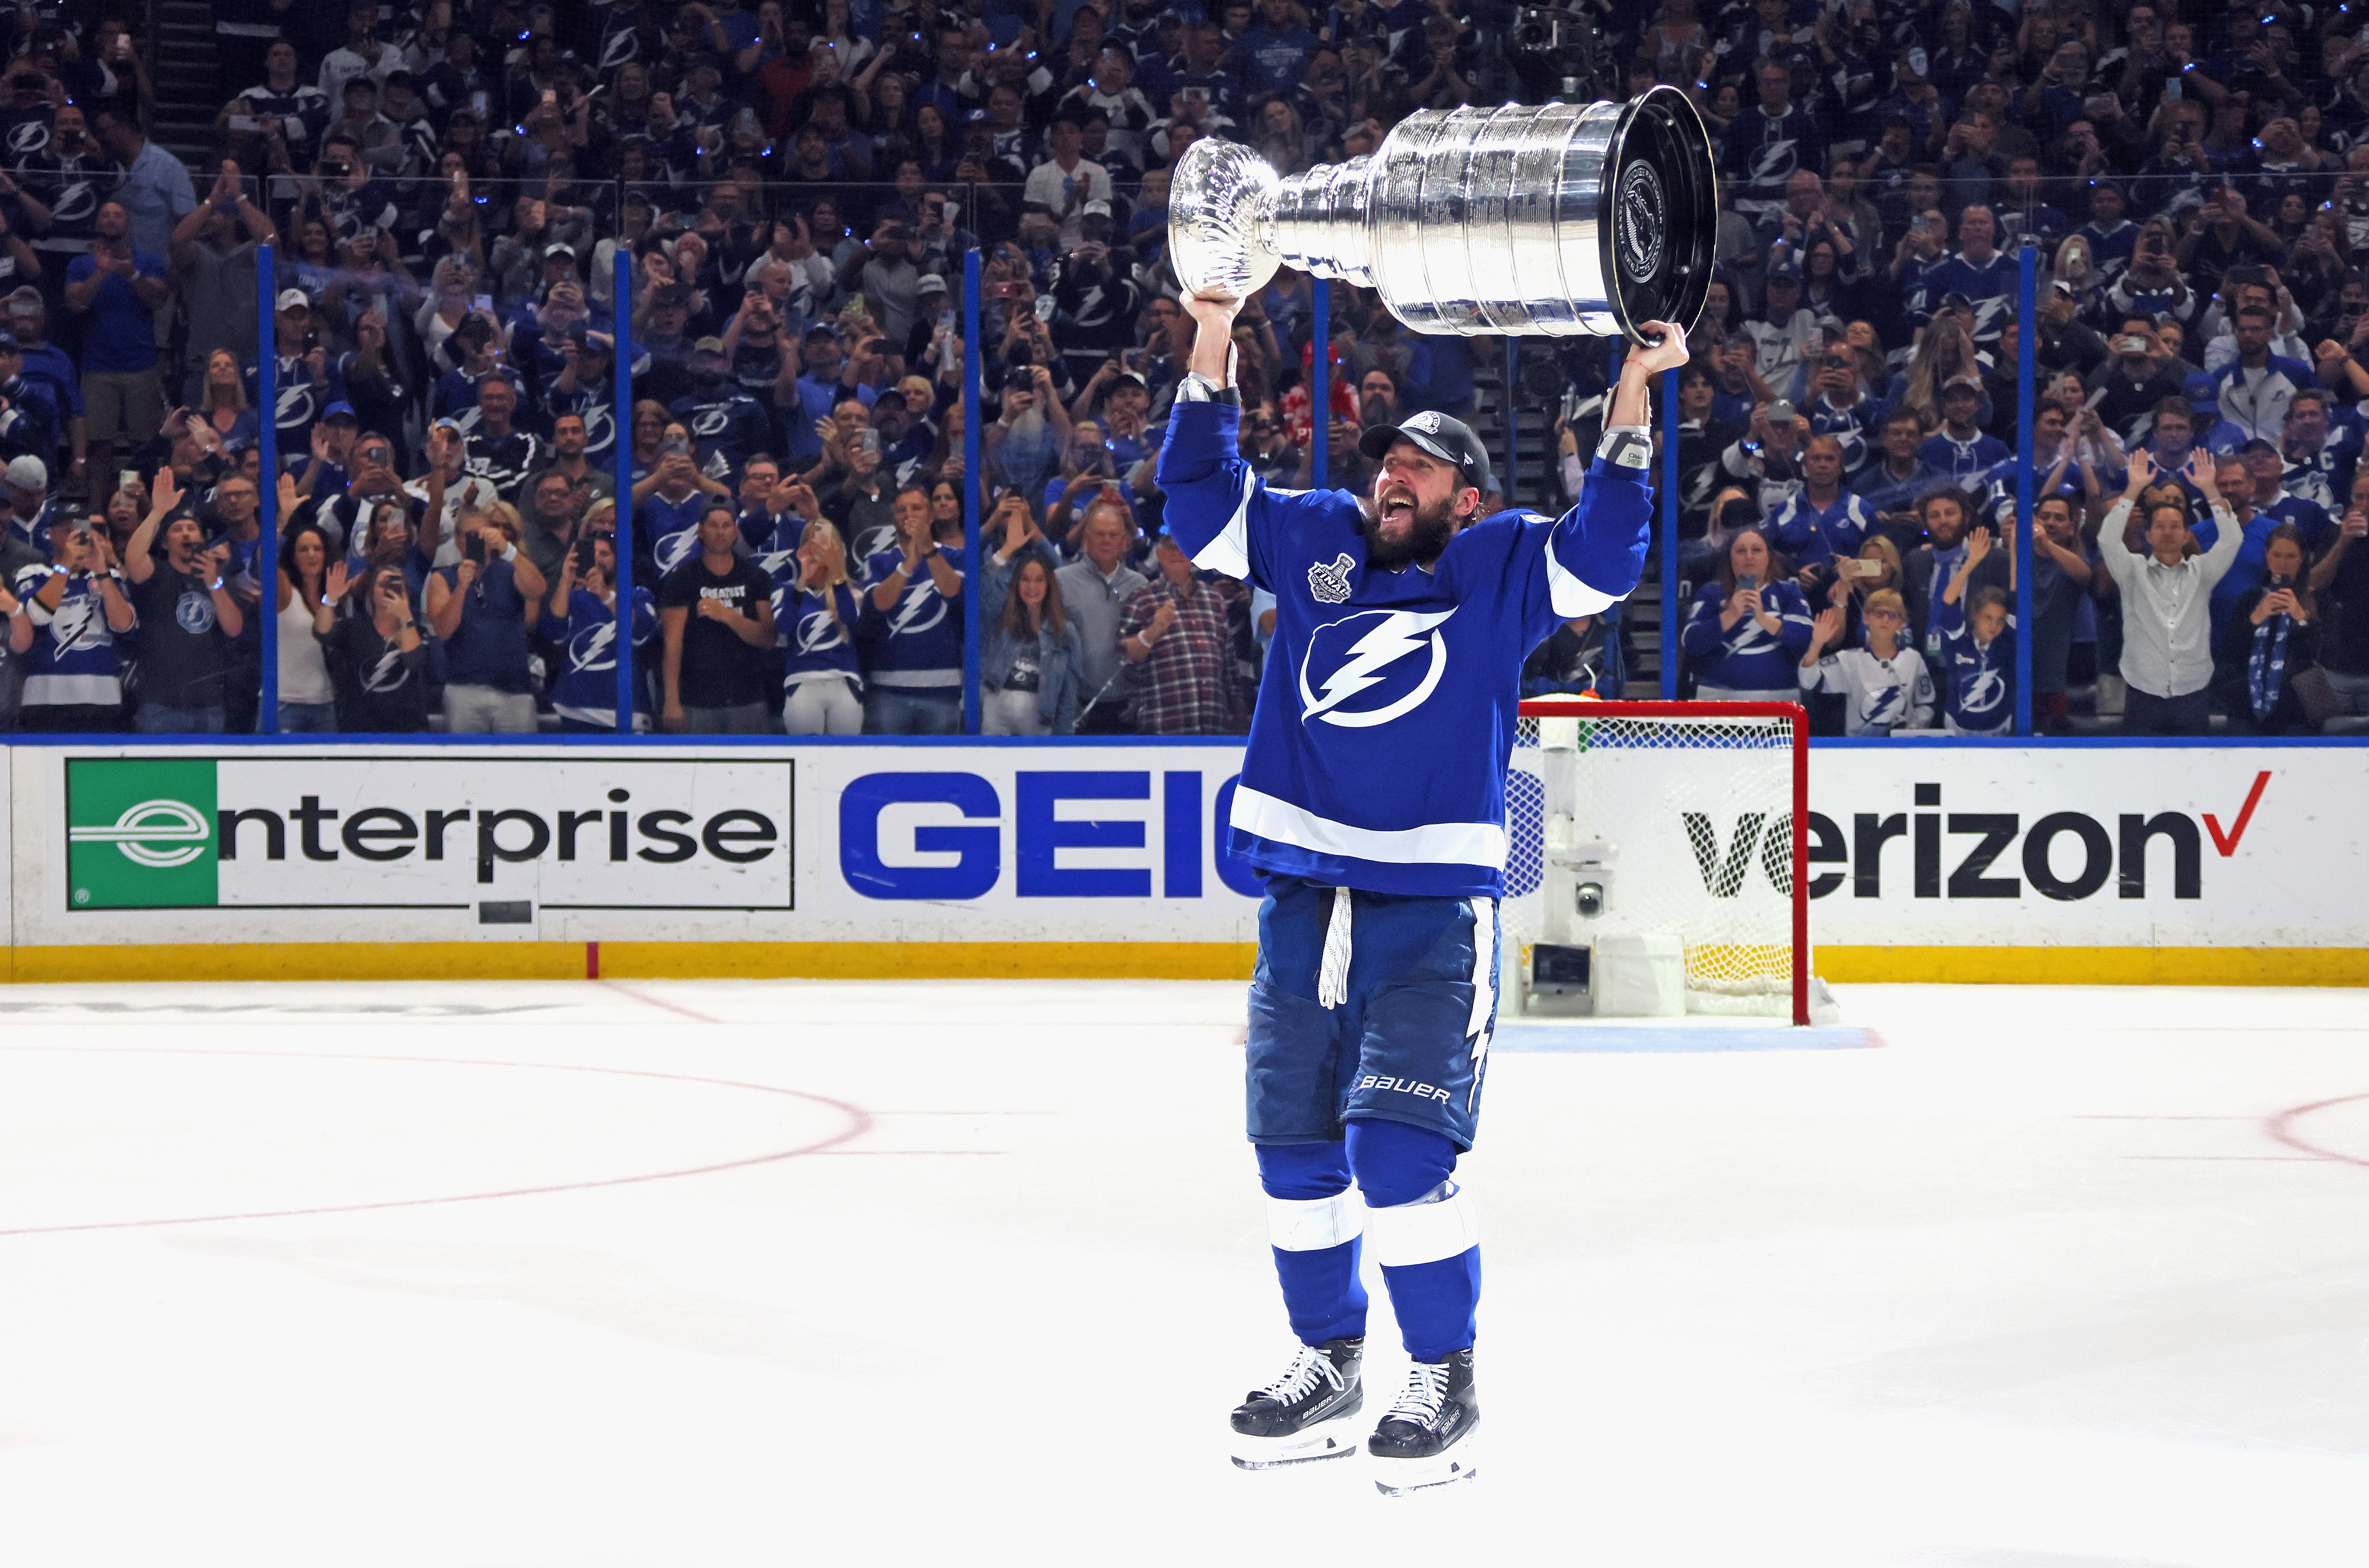 Nikita Kucherov #86 of the Tampa Bay Lightning celebrates with the Stanley Cup following the victory over the Montreal Canadiens in Game Five of the 2021 NHL Stanley Cup Final at the Amalie Arena on July 07, 2021 in Tampa, Florida. The Lightning defeated the Canadiens 1-0 to take the series four games to one.